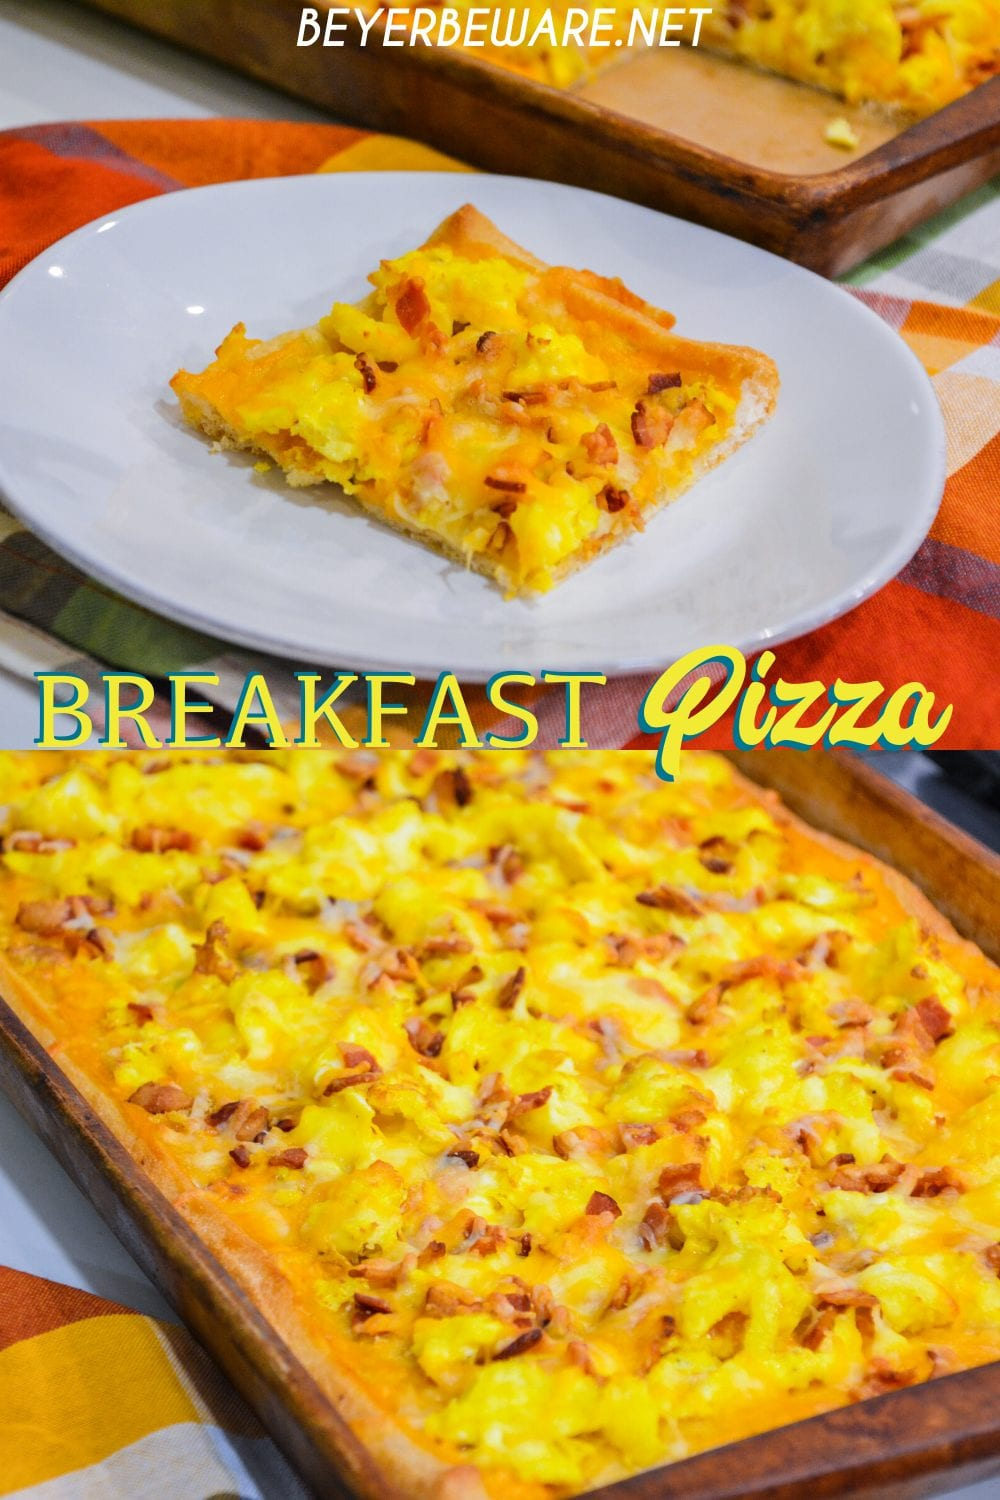 Cheesy bacon breakfast pizza is made with a refrigerated pizza crust, cheese sauce, scrambled egg, and bacon topped off with more cheese and garlic butter for a decadent breakfast treat.